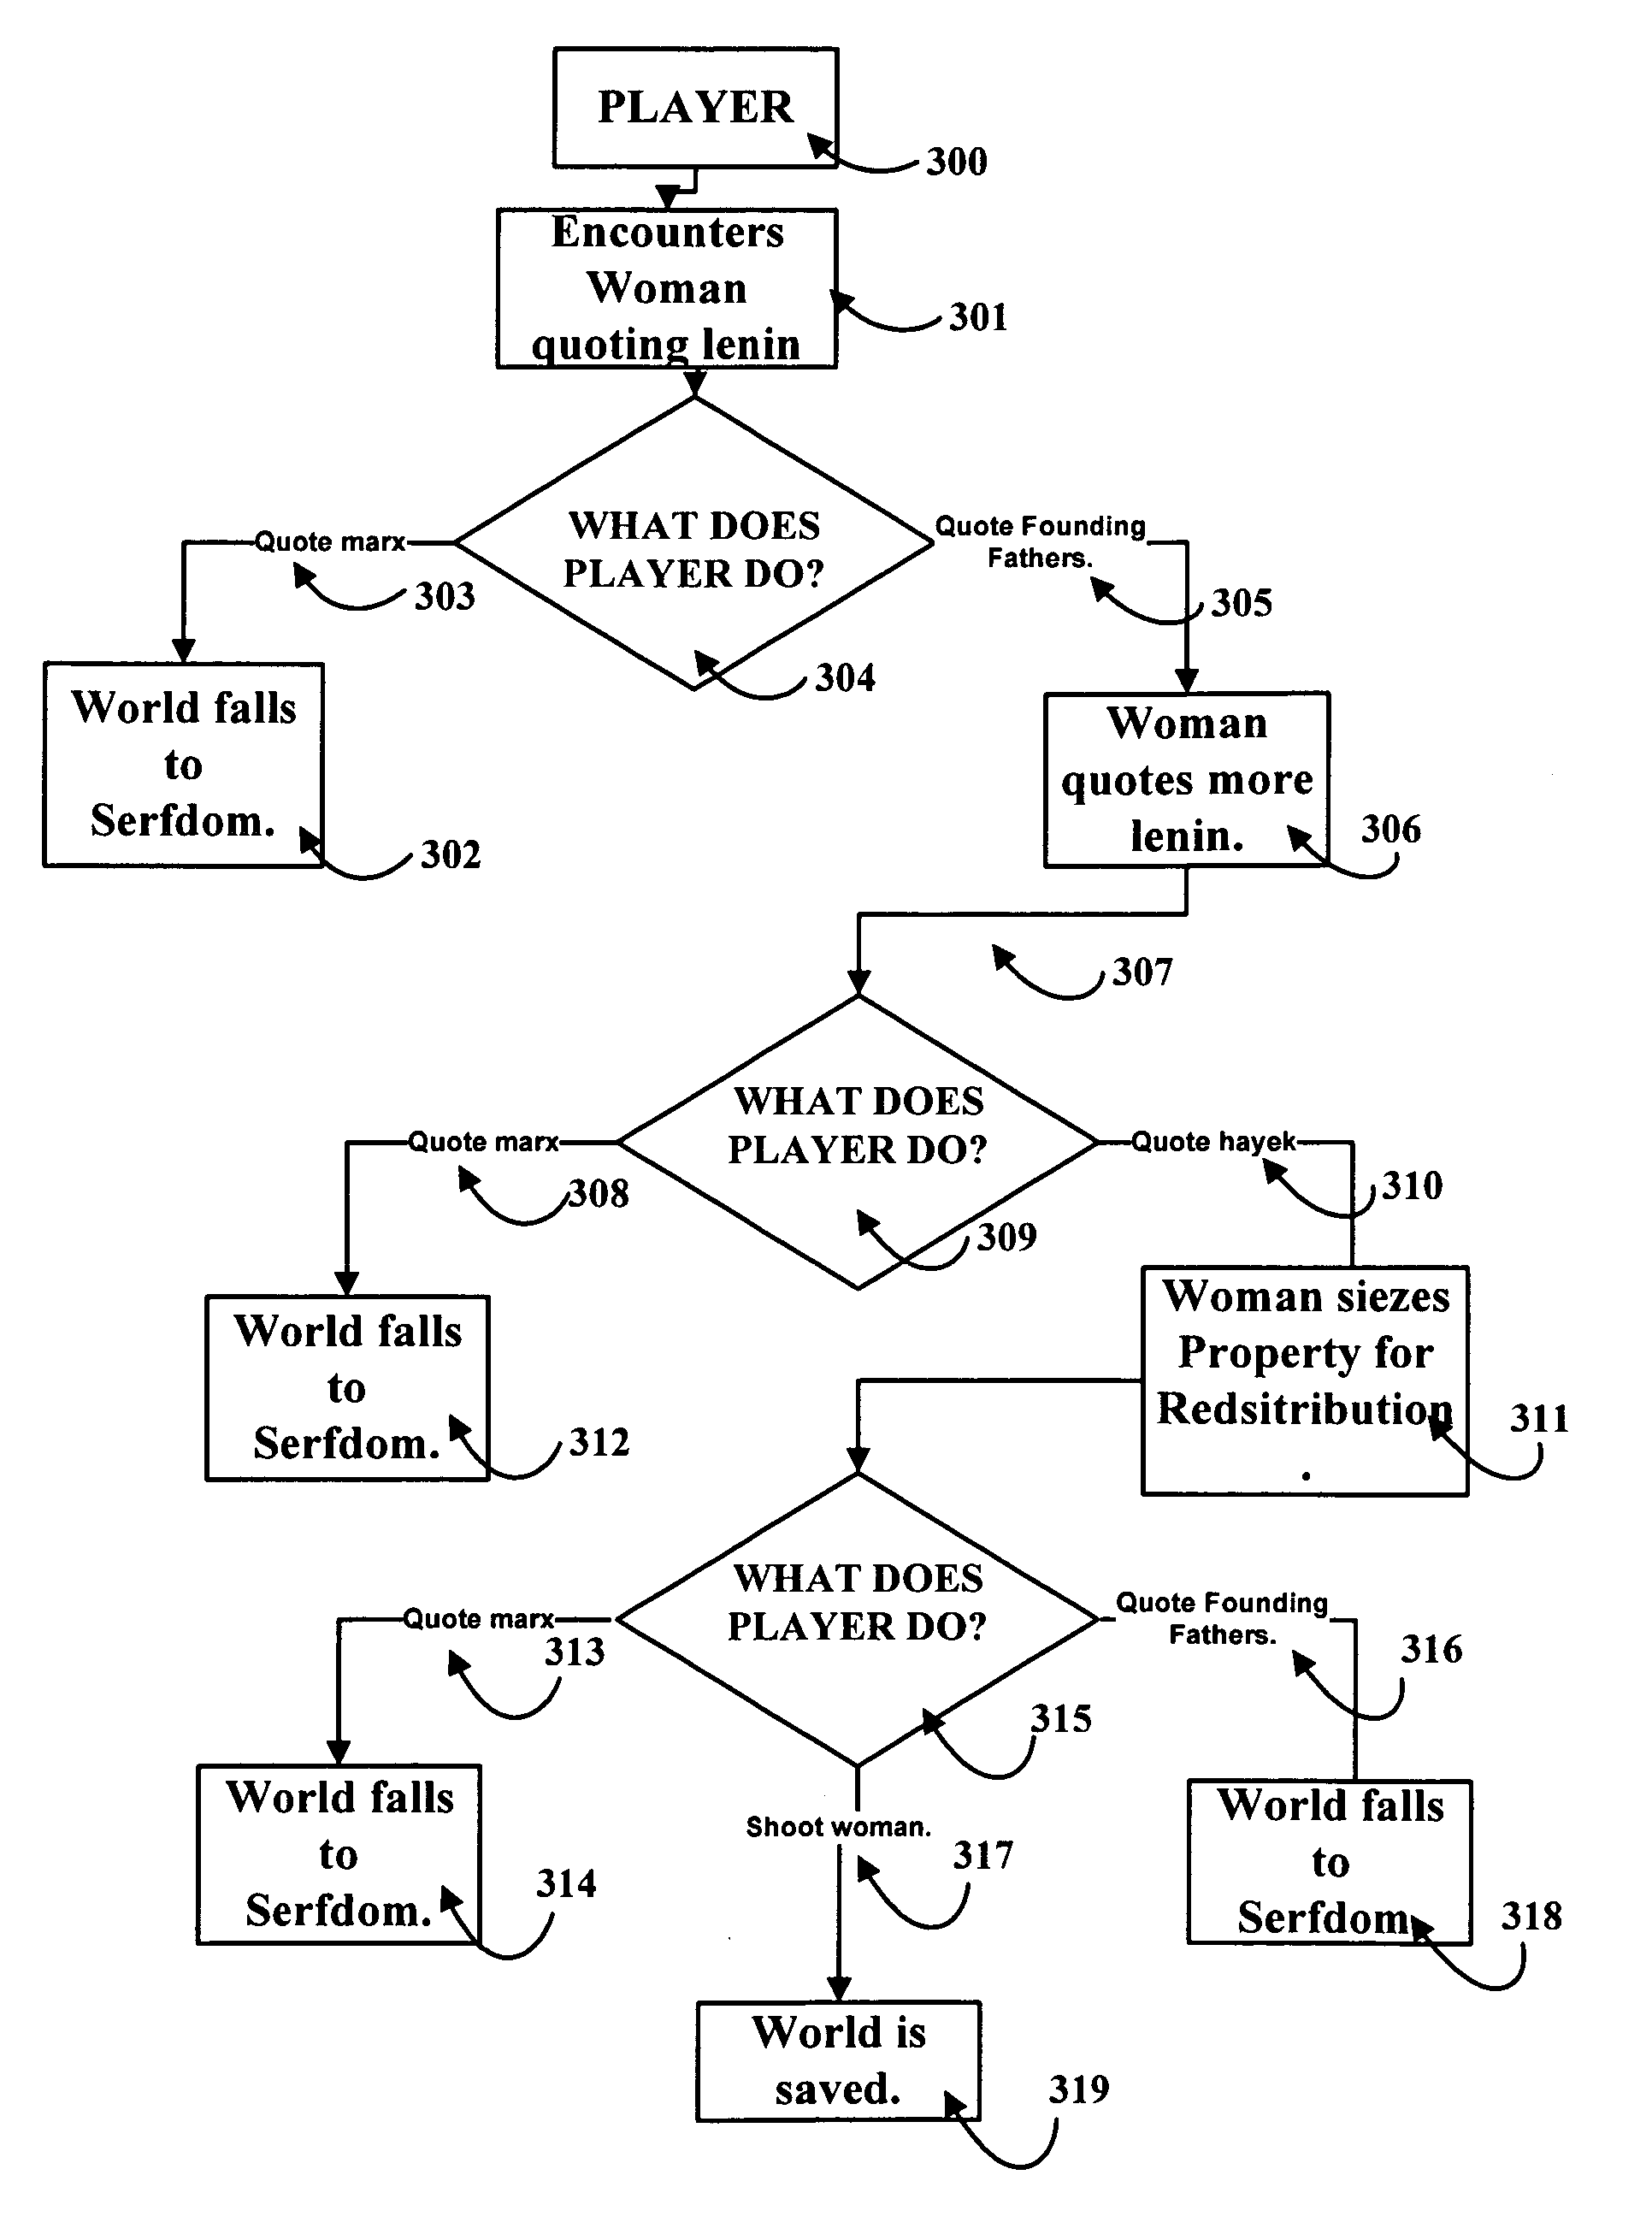 Analytics for US Patent Application No  2009/0017,886, System and